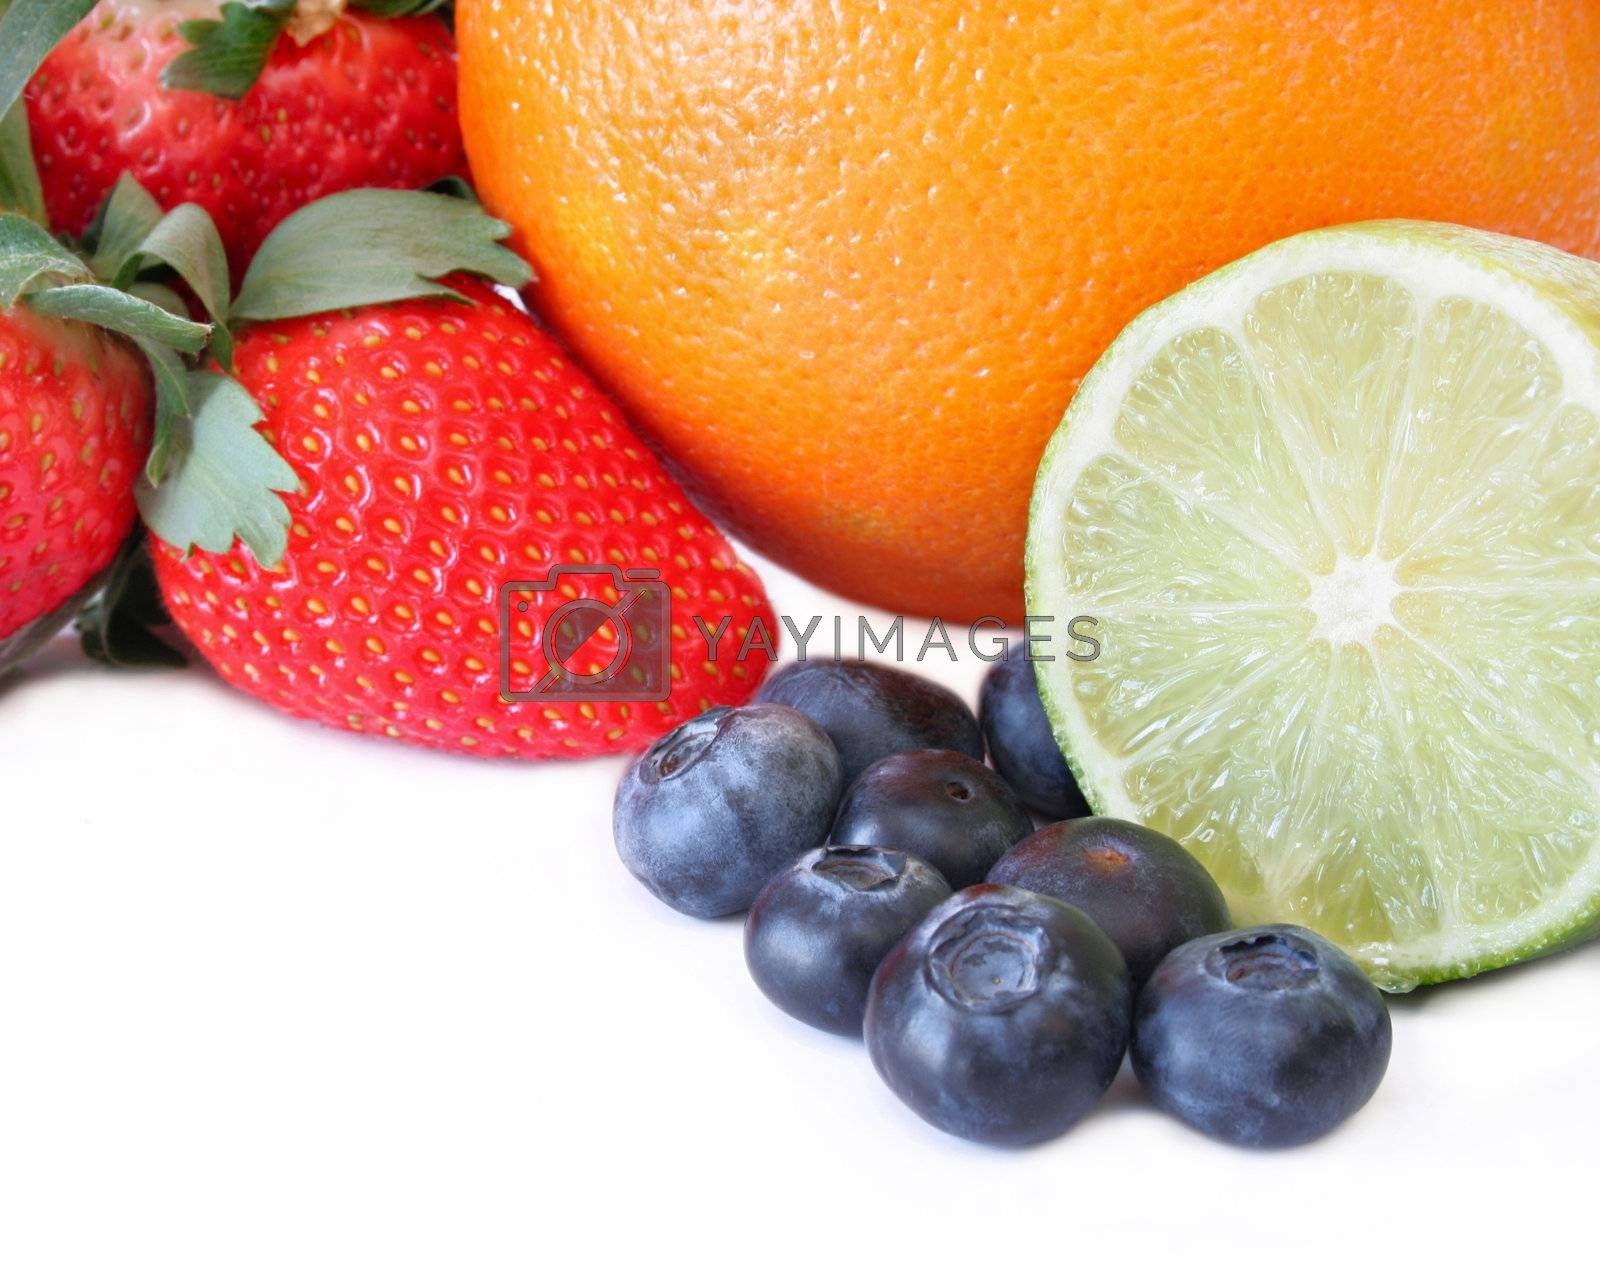 Strawberry, blueberries, Lime, and an orange all on a white background with copy space.